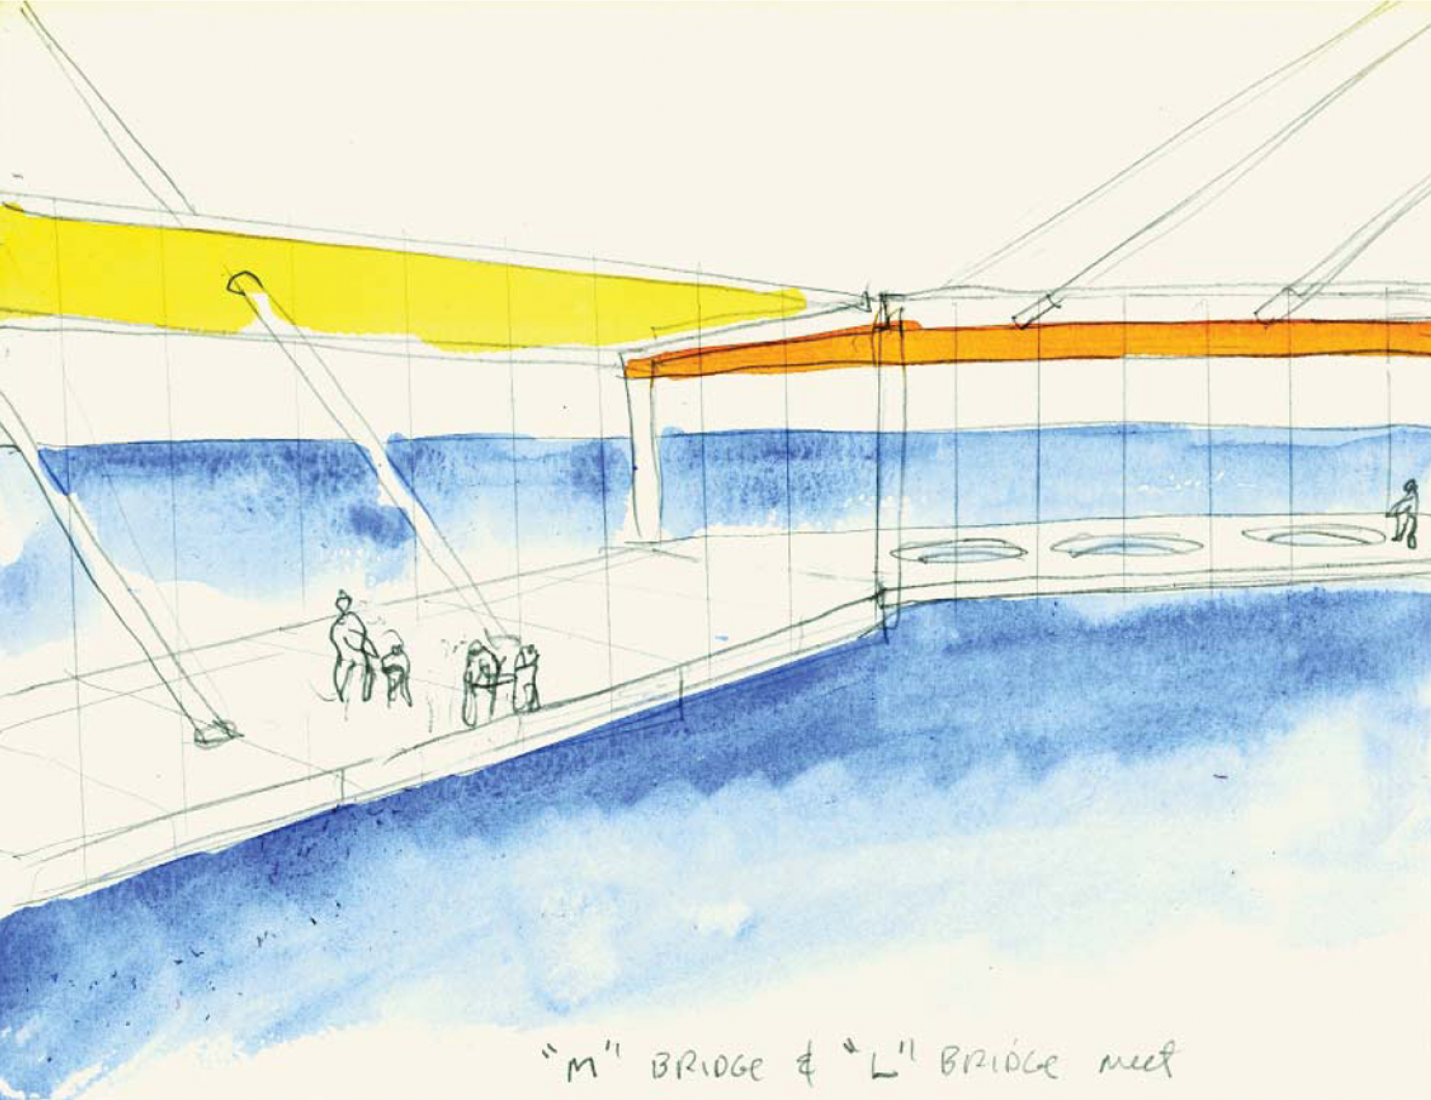 Sketch. The Langelinie and Marmormolen harbor gateway by Steven Holl.